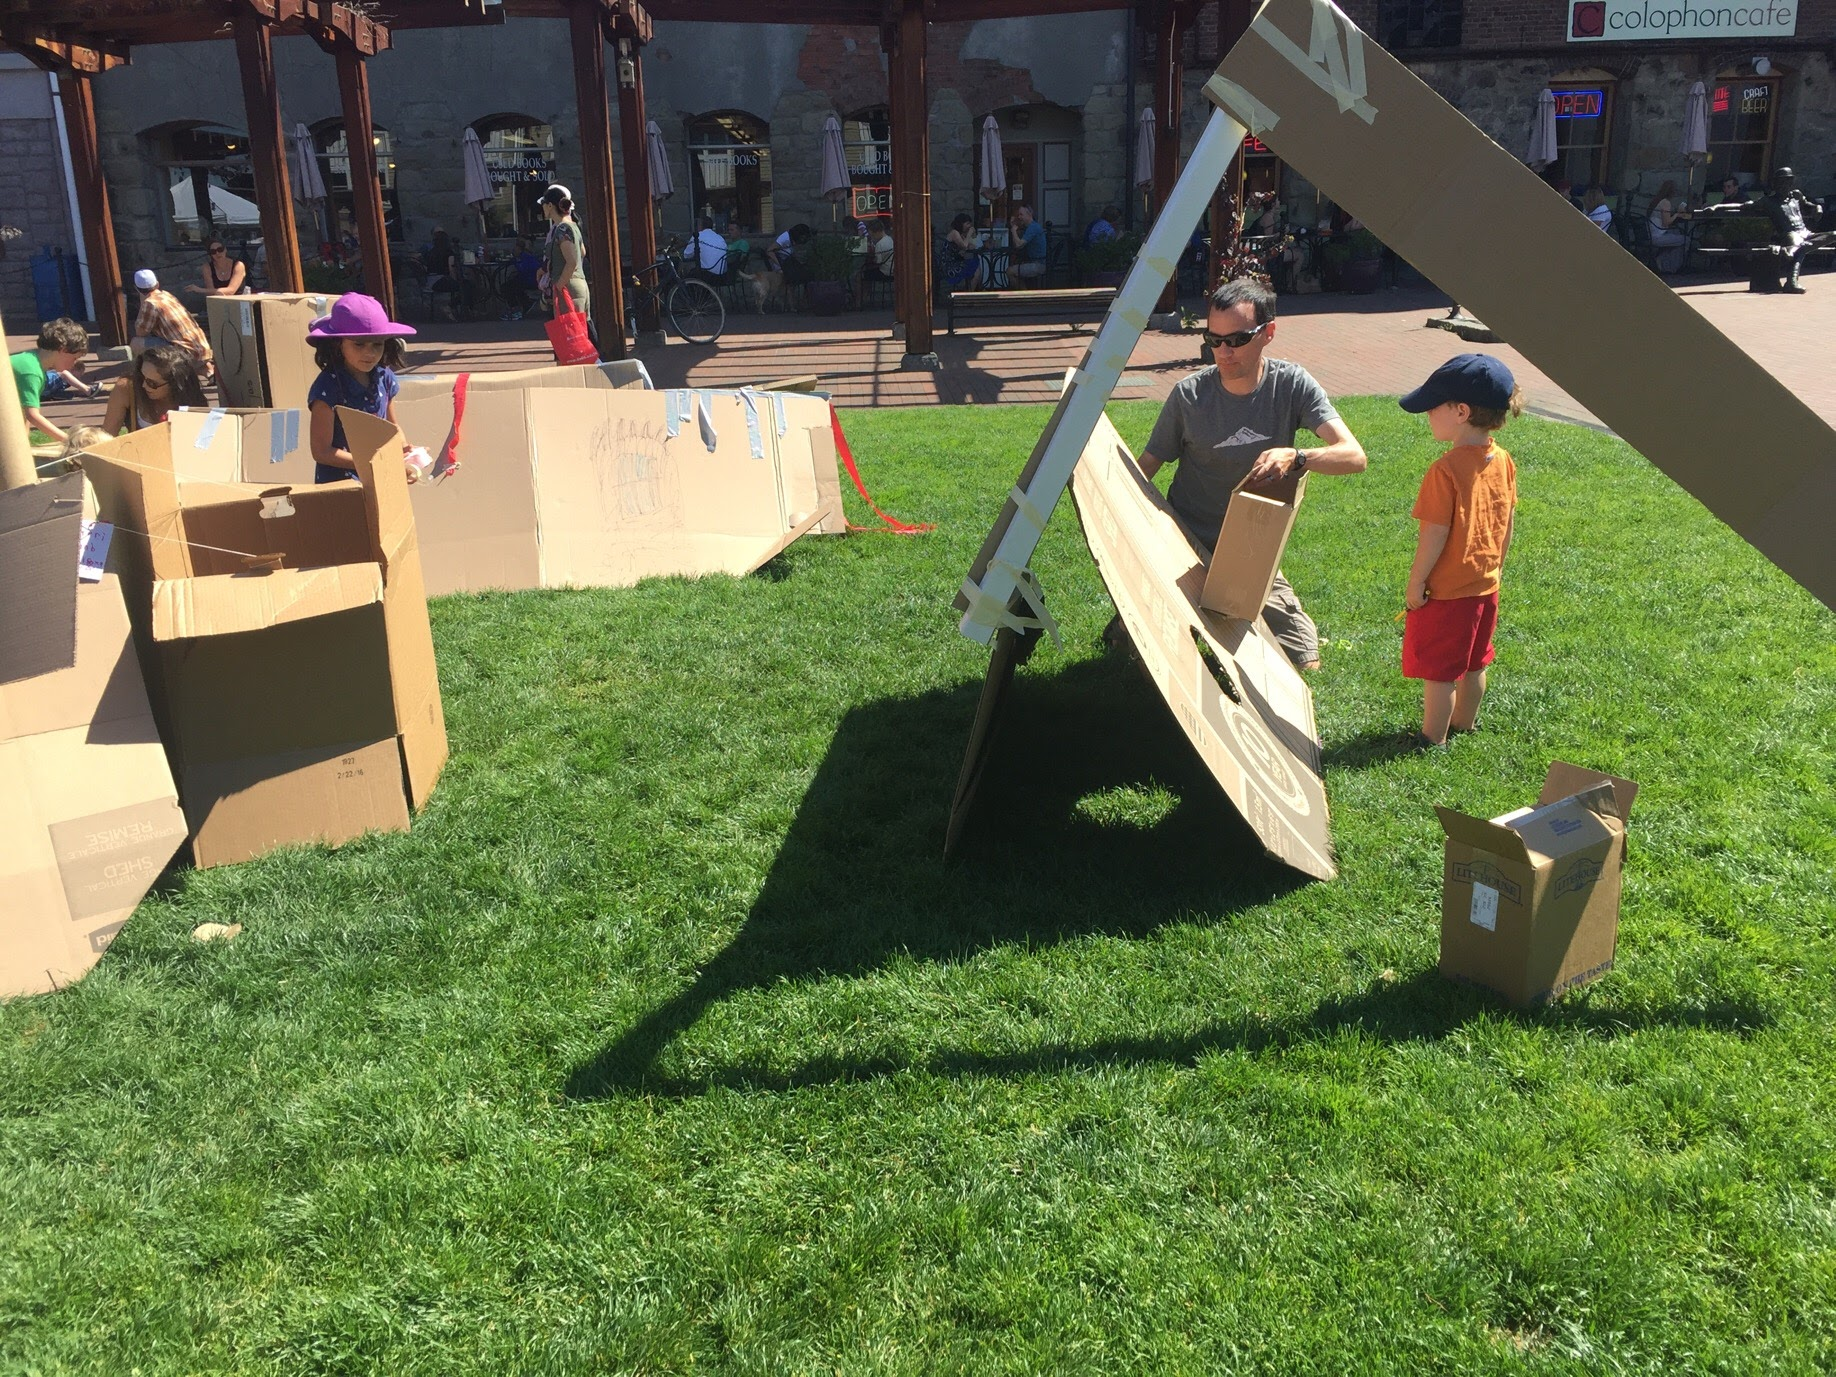 Playing together at a  Cardboard Playground  on the Fairhaven Green, 2017.